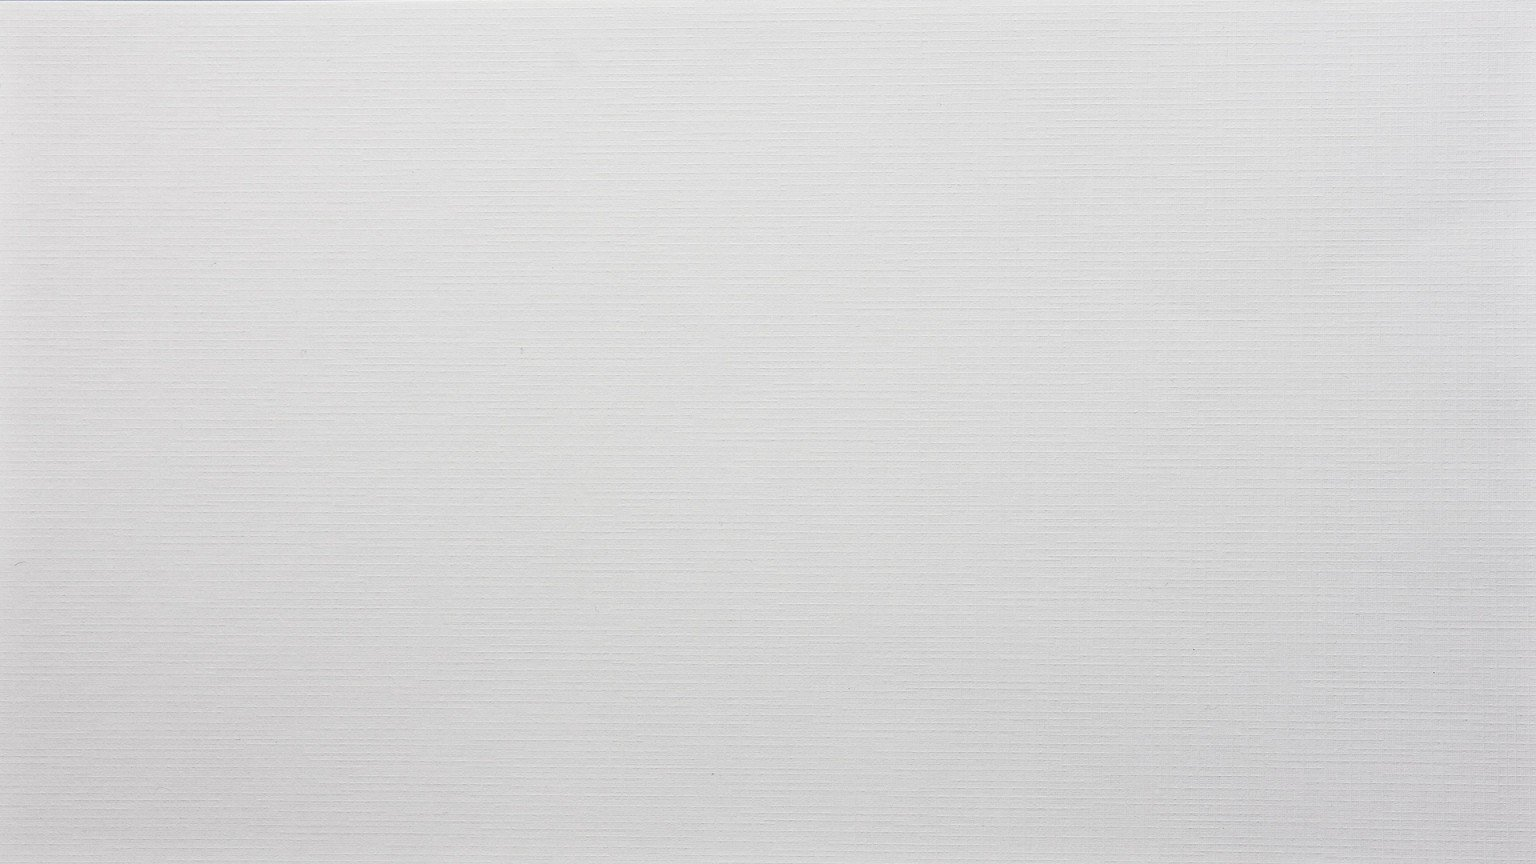 » white-paper-background-cardboard-texture-hd1